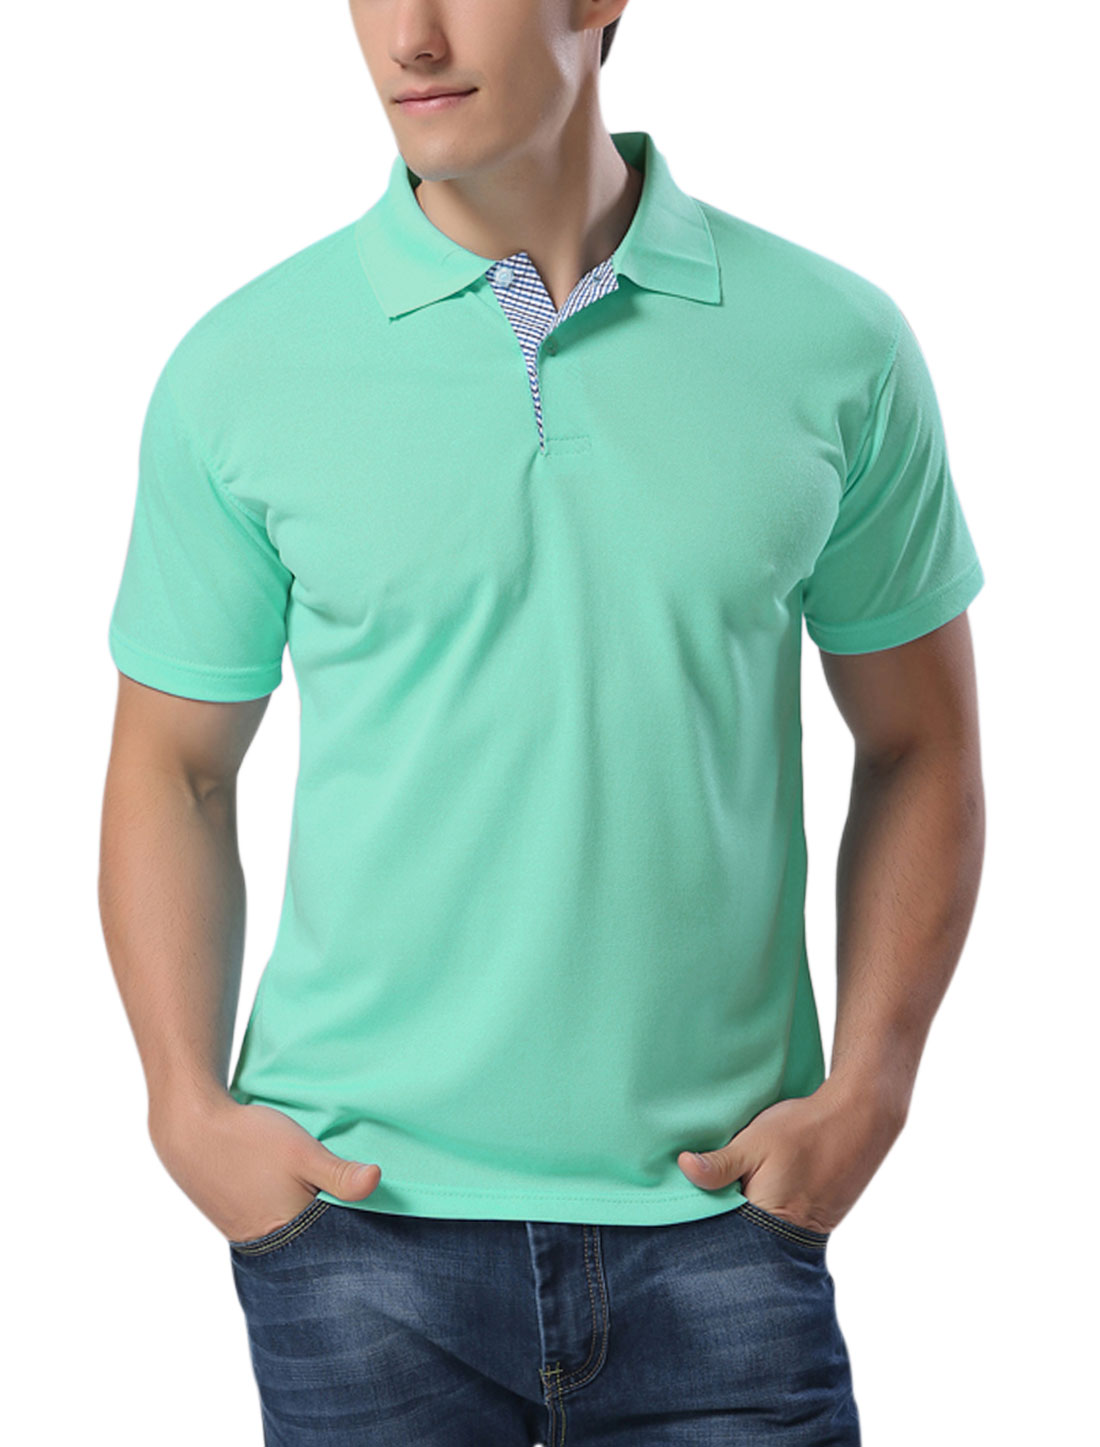 Man Point Collar Buttons Upper Performance Polo Shirts Mint L